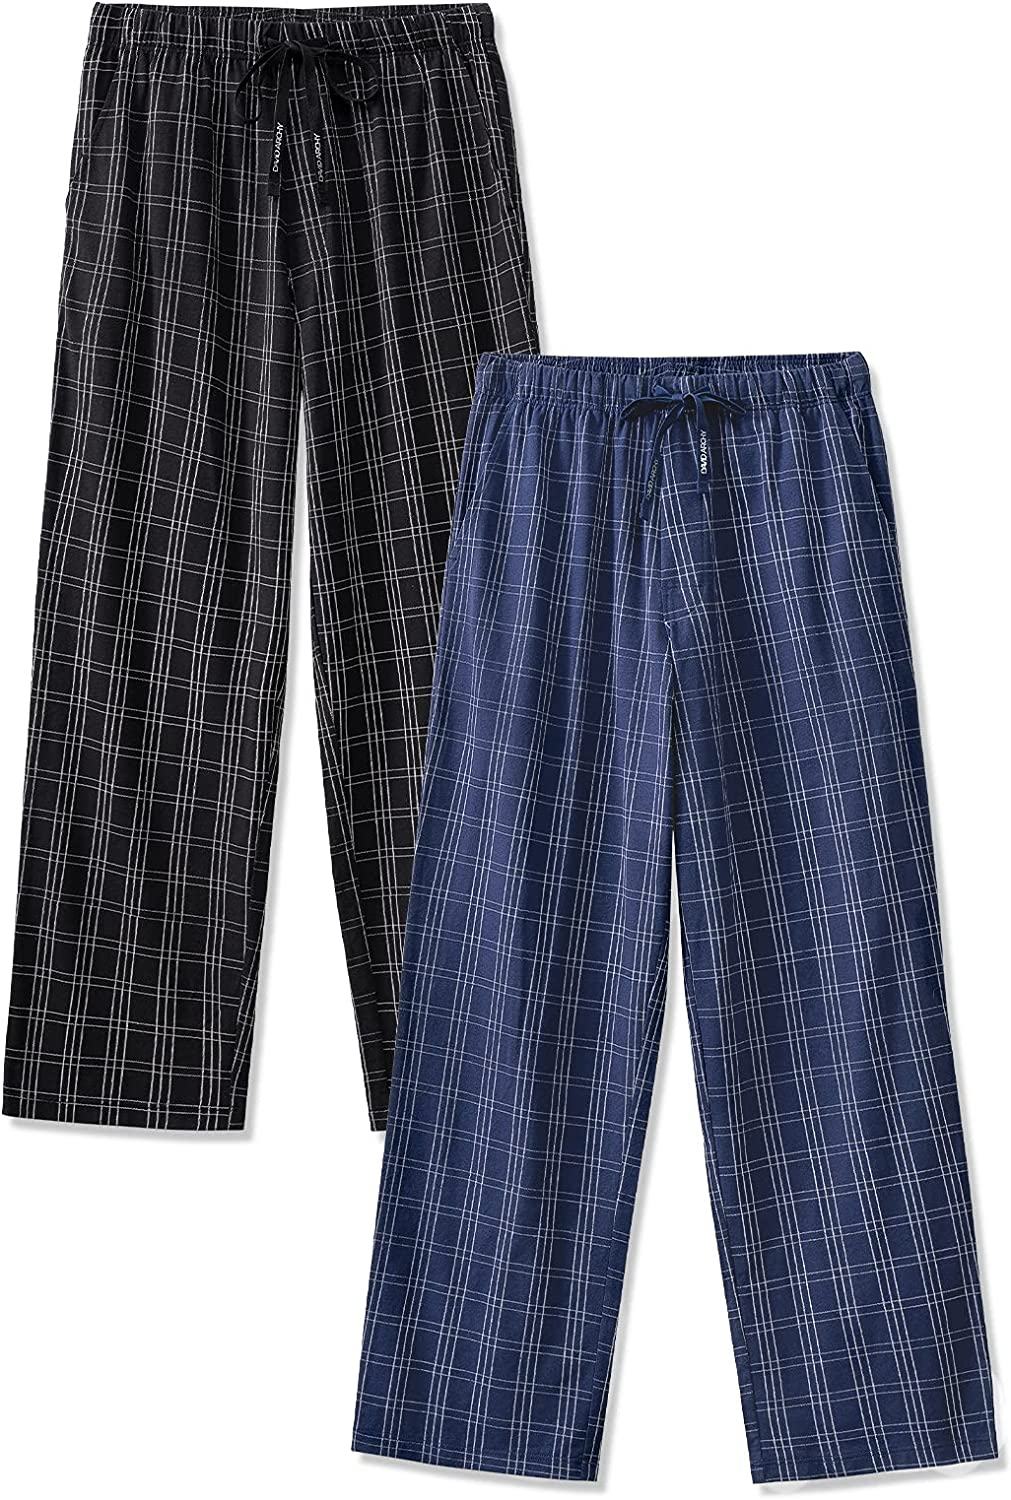 DAVID ARCHY Men's Soft Cotton Knitted Pajama Pants Lightweight Lounge Bottoms in 1 or 2 Pack